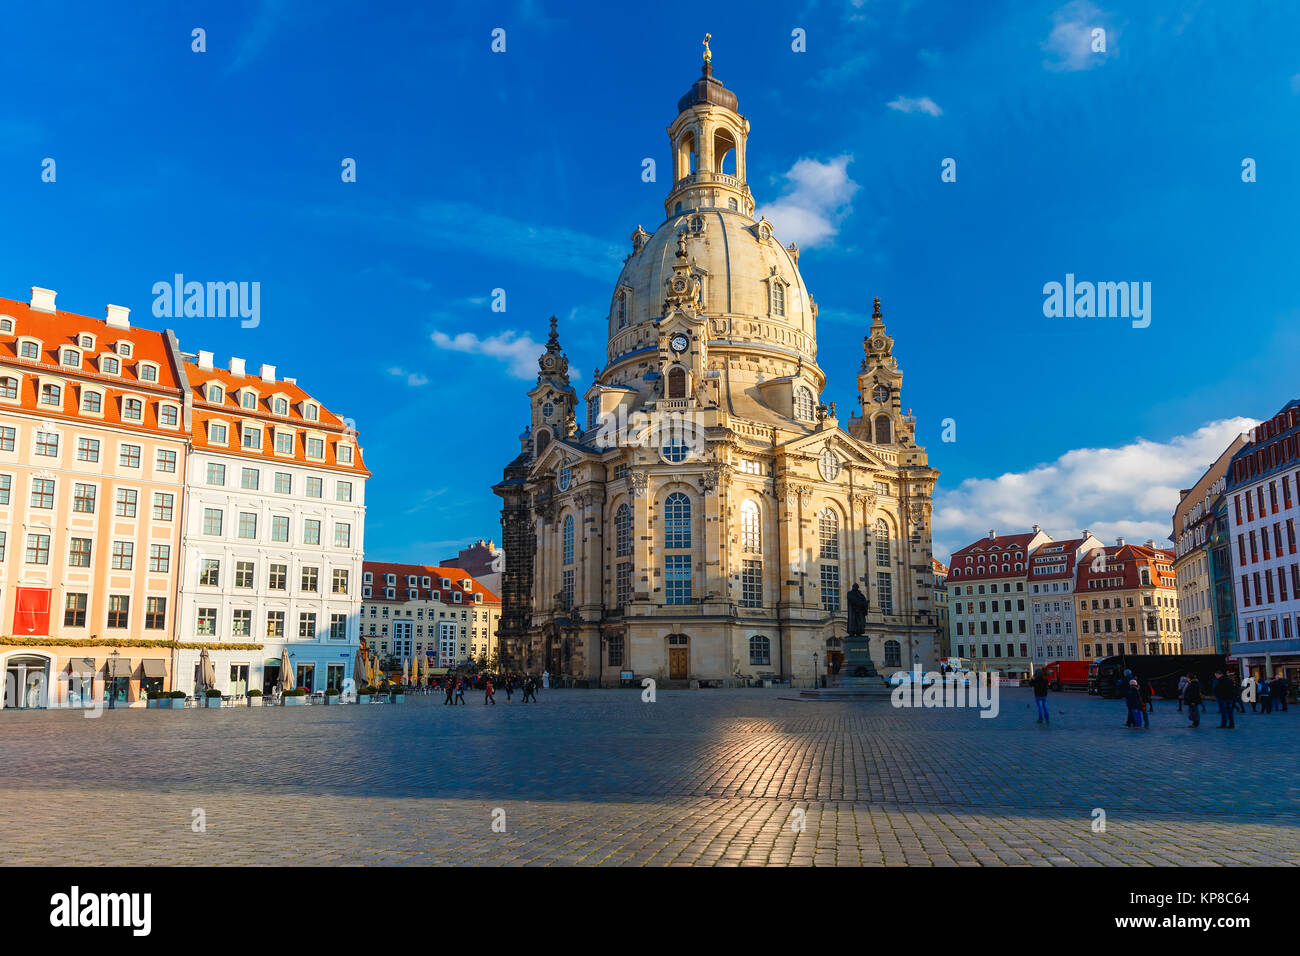 Frauenkirche in the morning, Dresden, Germany - Stock Image